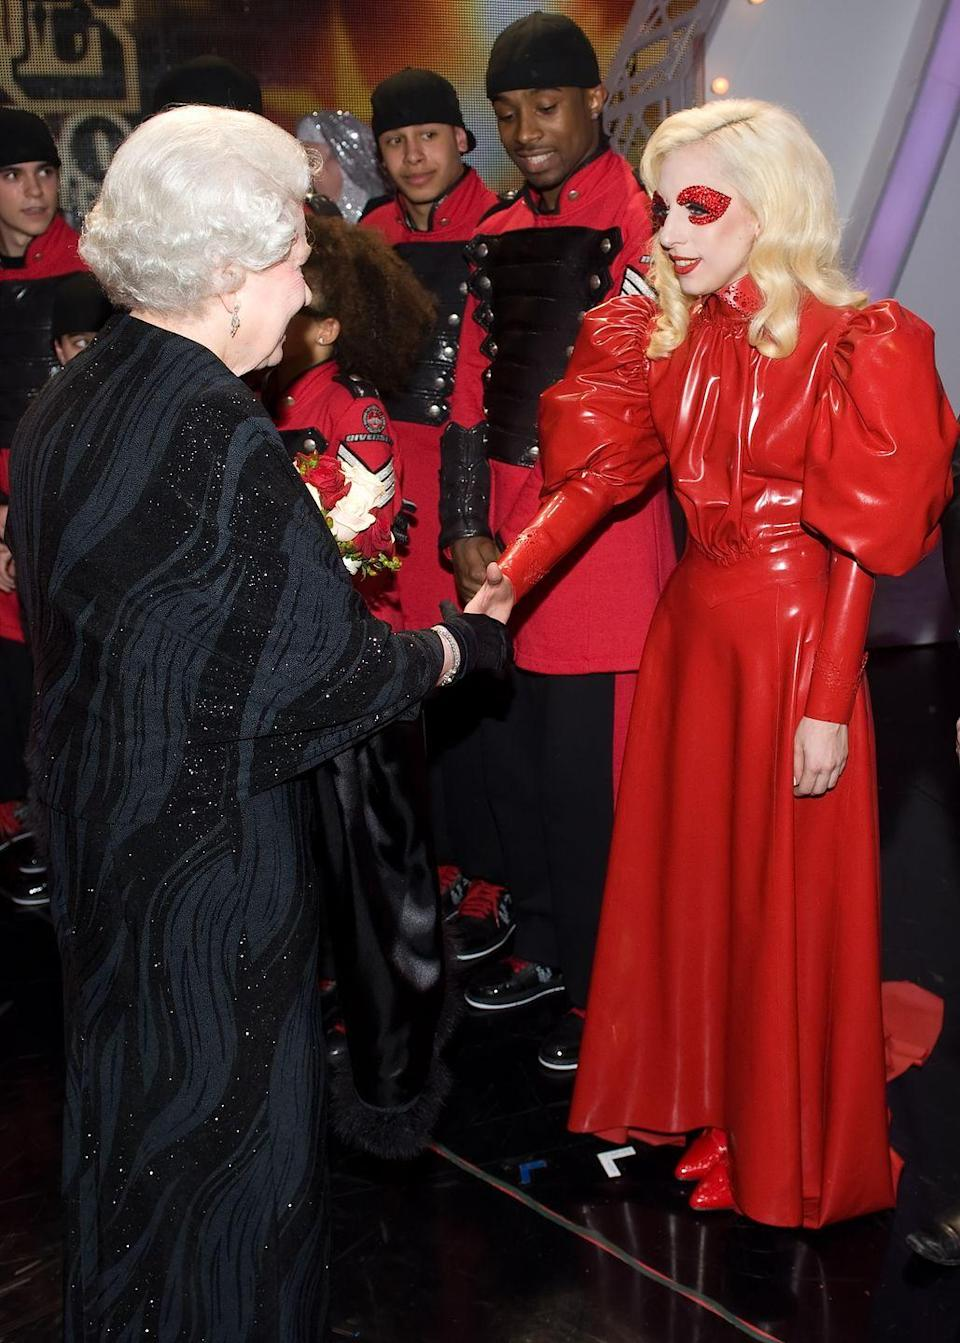 """<p>Bright colors are reserved for the Monarch—she wears them so that she <a href=""""https://www.harpersbazaar.com/celebrity/latest/g20651504/royal-family-rules-etiquette/?slide=16"""" rel=""""nofollow noopener"""" target=""""_blank"""" data-ylk=""""slk:can stand out in a crowd"""" class=""""link rapid-noclick-resp"""">can stand out in a crowd</a>. For instance, it's best to sport something more subdued than what Lady Gaga has on here.</p>"""